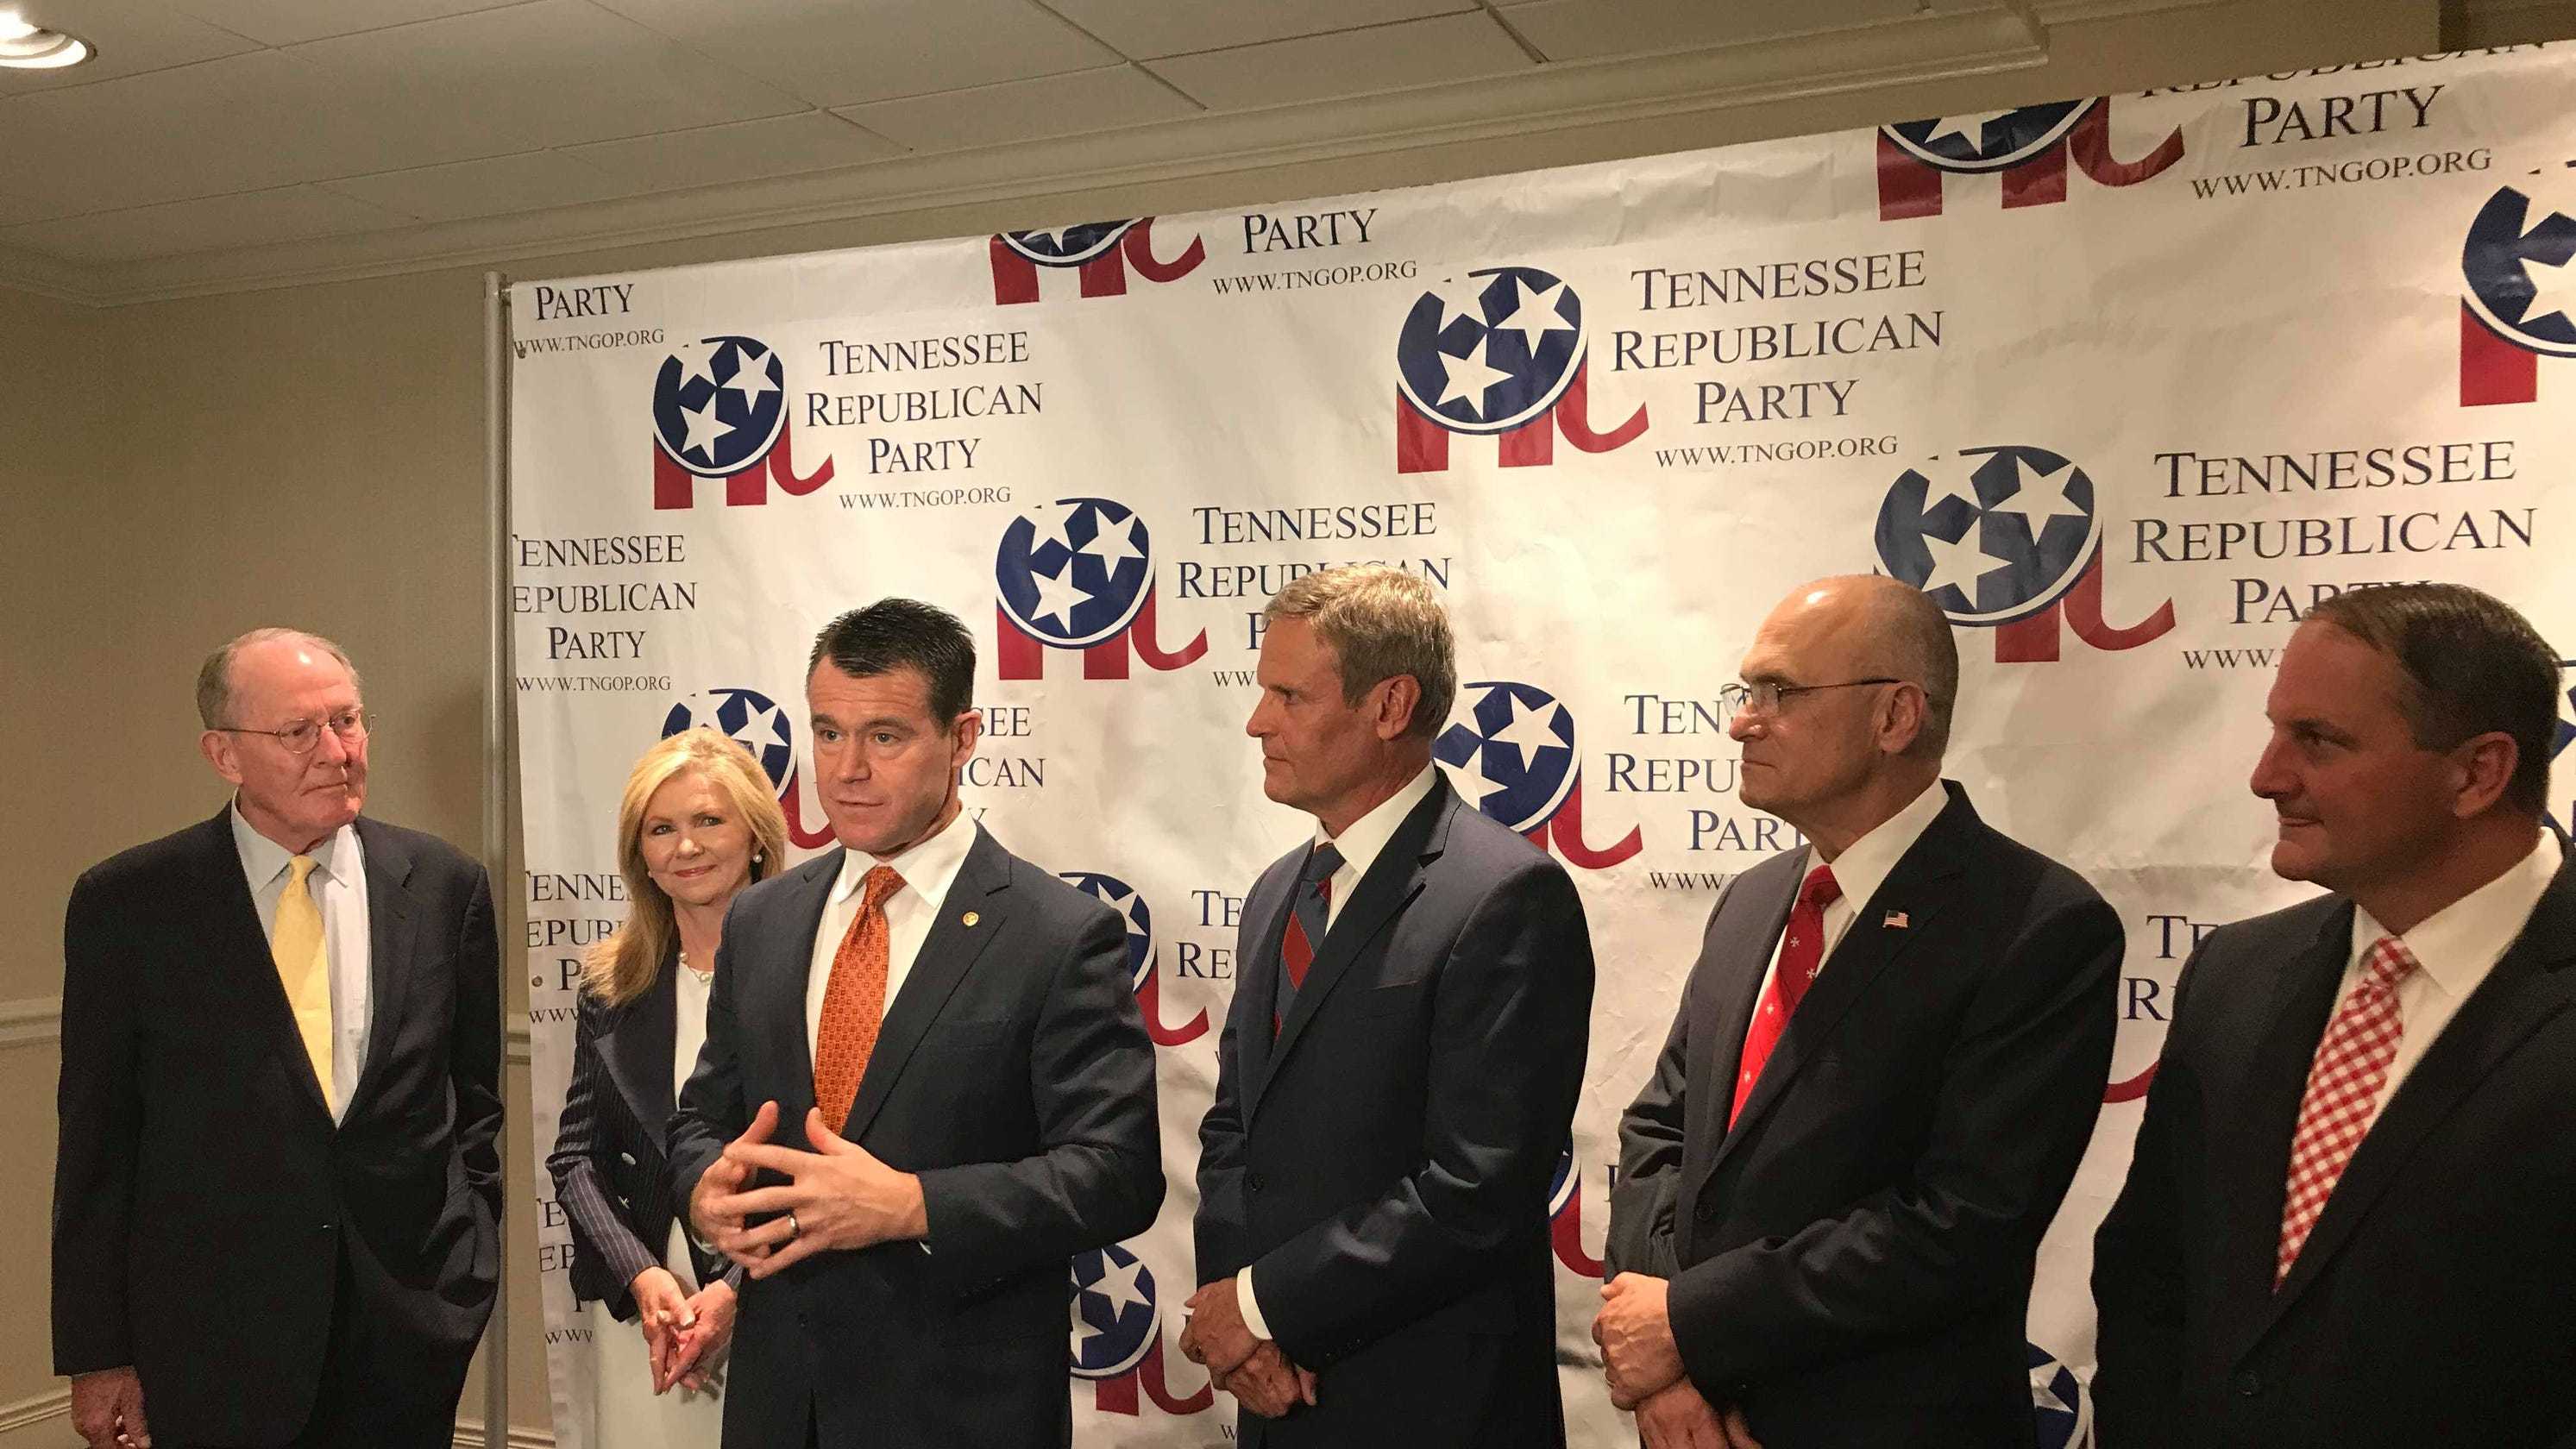 2019 Statesmen S Dinner Gathers Prominent Tennessee Republicans